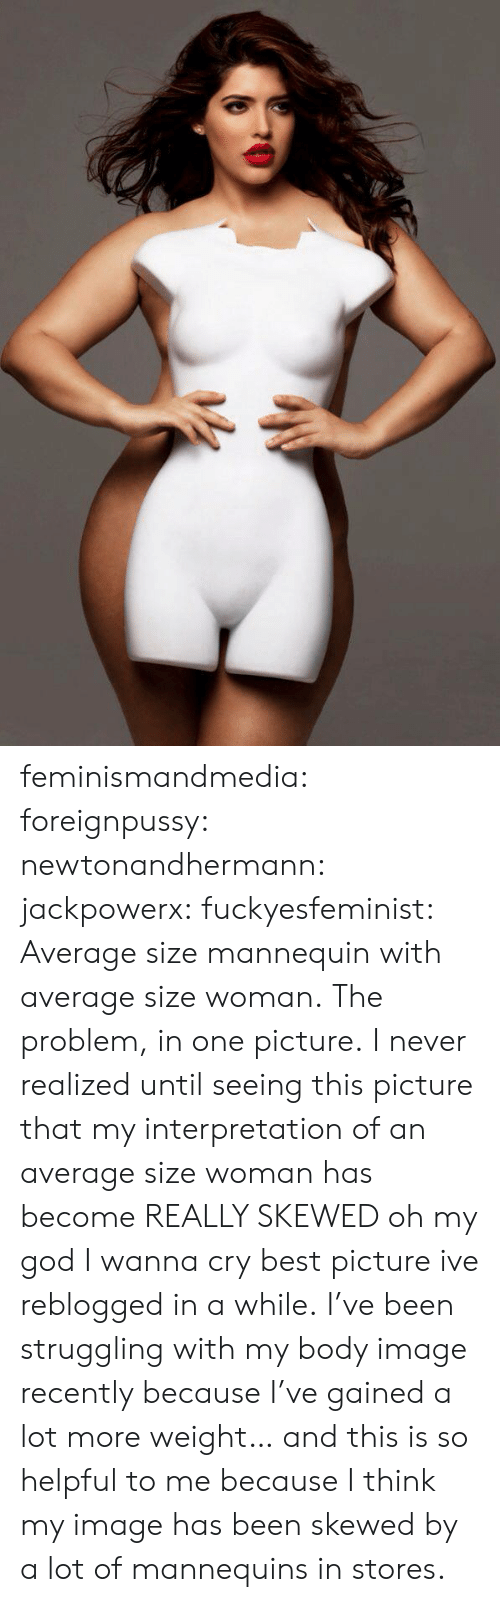 God, Oh My God, and Tumblr: feminismandmedia: foreignpussy:  newtonandhermann:  jackpowerx:  fuckyesfeminist:  Average size mannequin with average size woman.  The problem, in one picture.  I never realized until seeing this picture that my interpretation of an average size woman has become REALLY SKEWED oh my god I wanna cry  best picture ive reblogged in a while.  I've been struggling with my body image recently because I've gained a lot more weight… and this is so helpful to me because I think my image has been skewed by a lot of mannequins in stores.